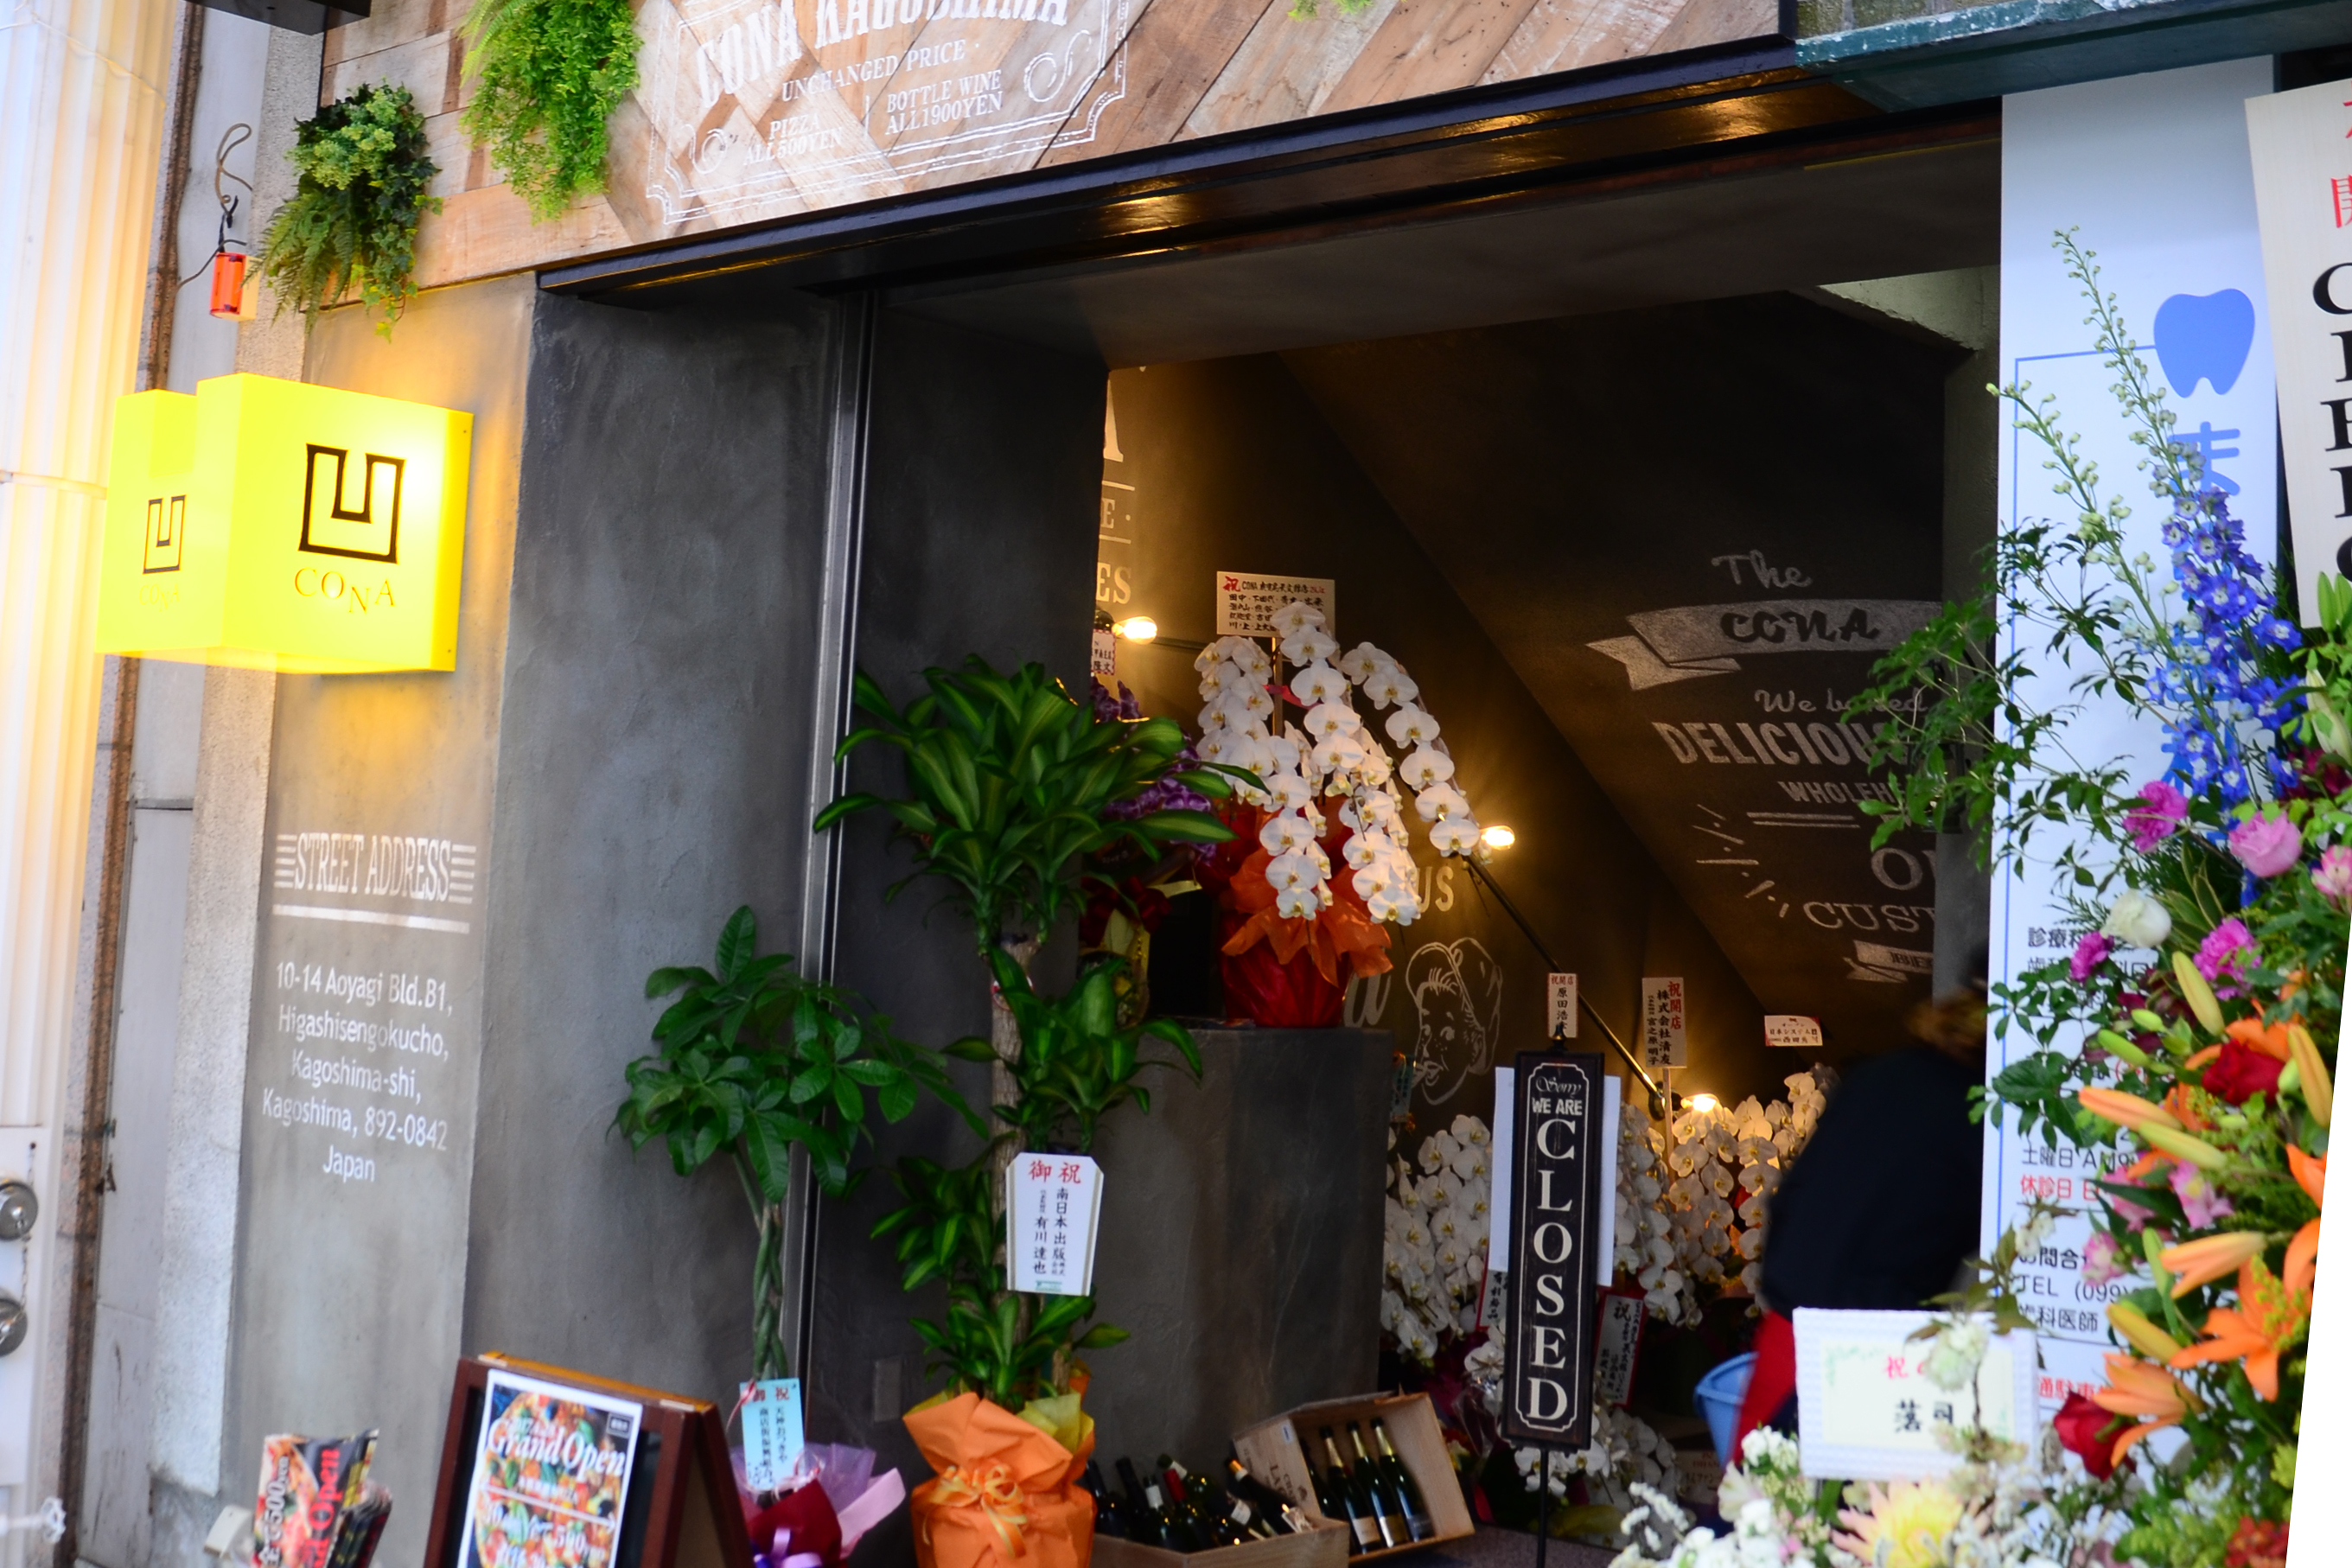 ITALIAN & WINE BAR CONA 鹿児島天文館店